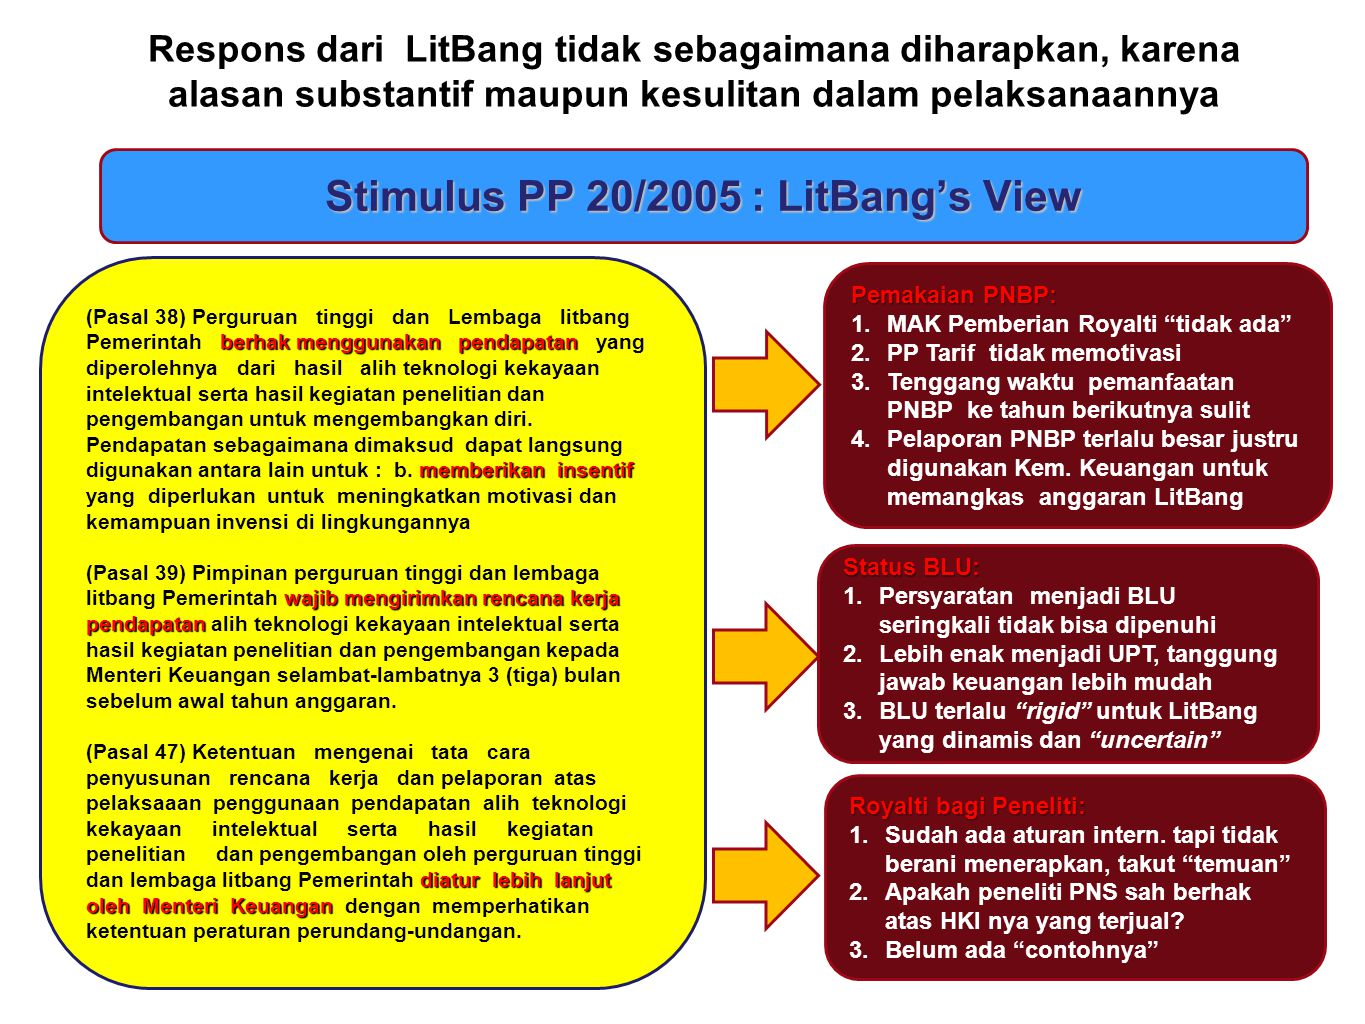 Stimulus PP 20/2005 : LitBang's View